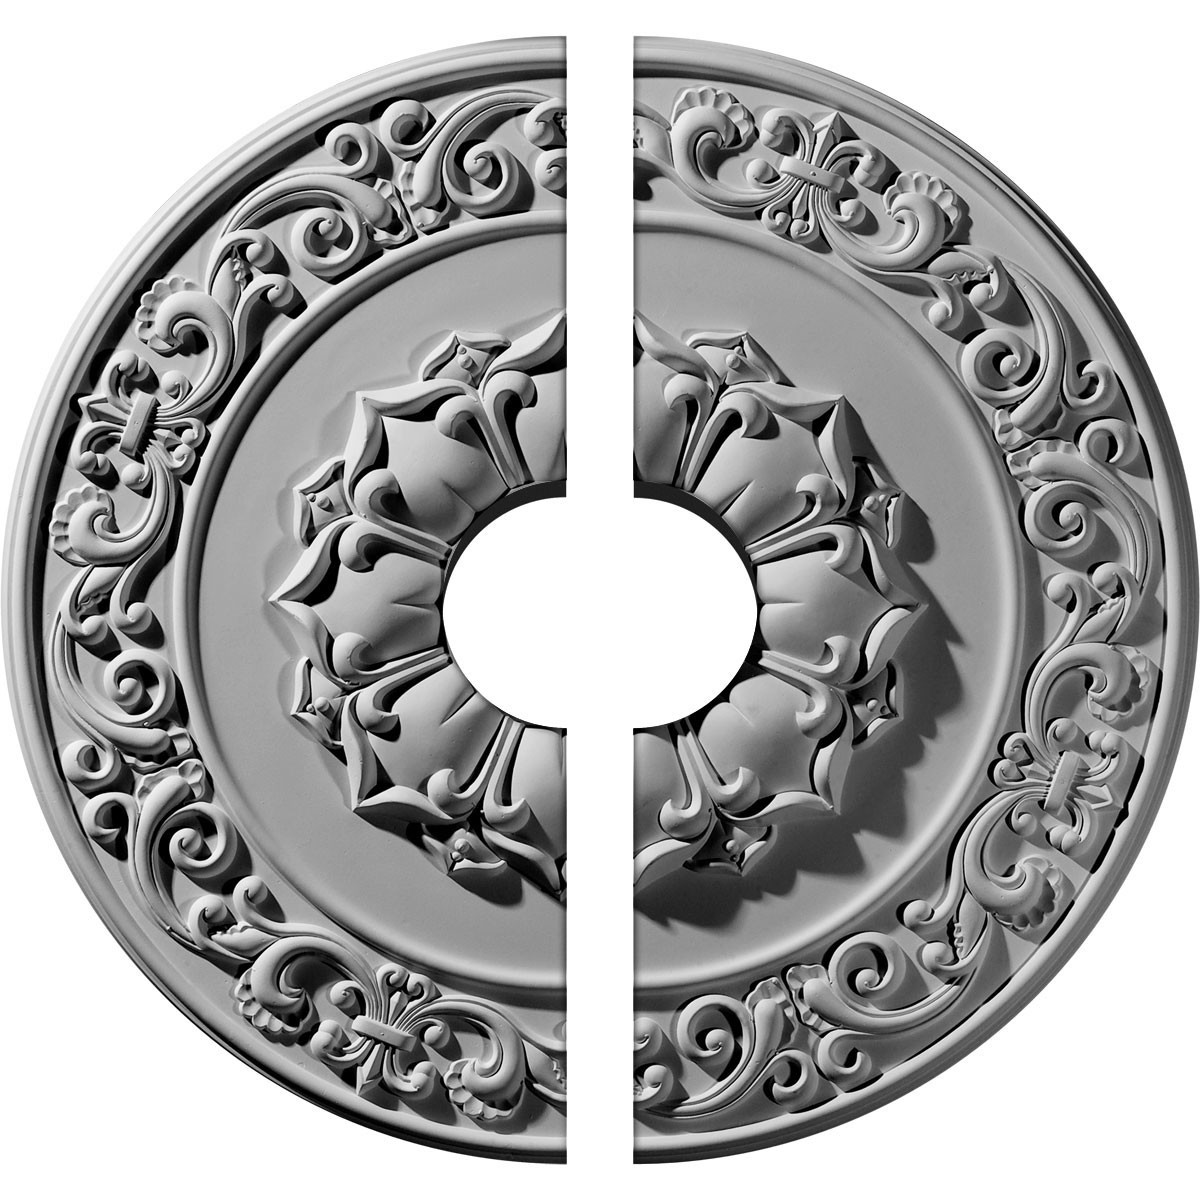 """EM-CM27SY2-06000 - 27 3/4""""OD x 6""""ID x 2""""P Sydney Ceiling Medallion, Two Piece (Fits Canopies up to 6"""")"""